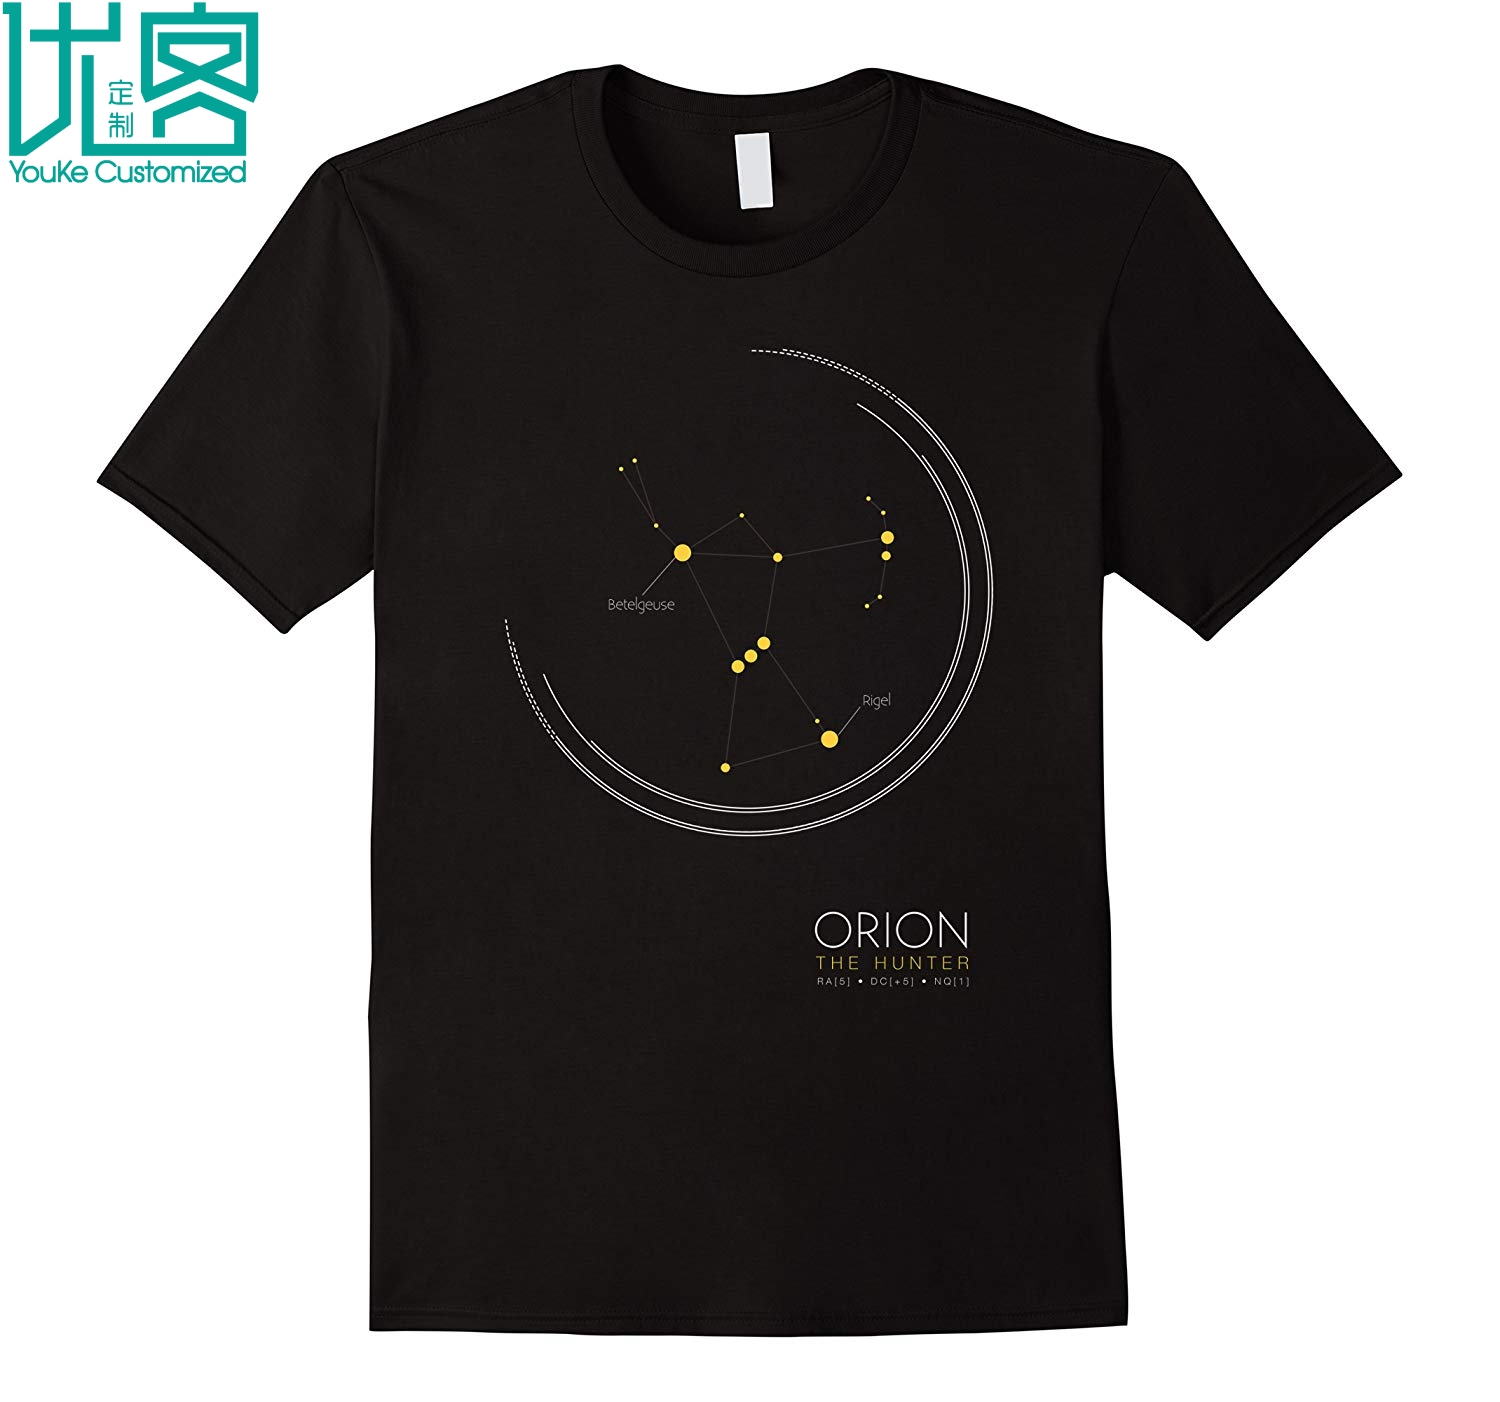 Camiseta de manga curta de orion the hunter constellation t para nerds da ciência 2019